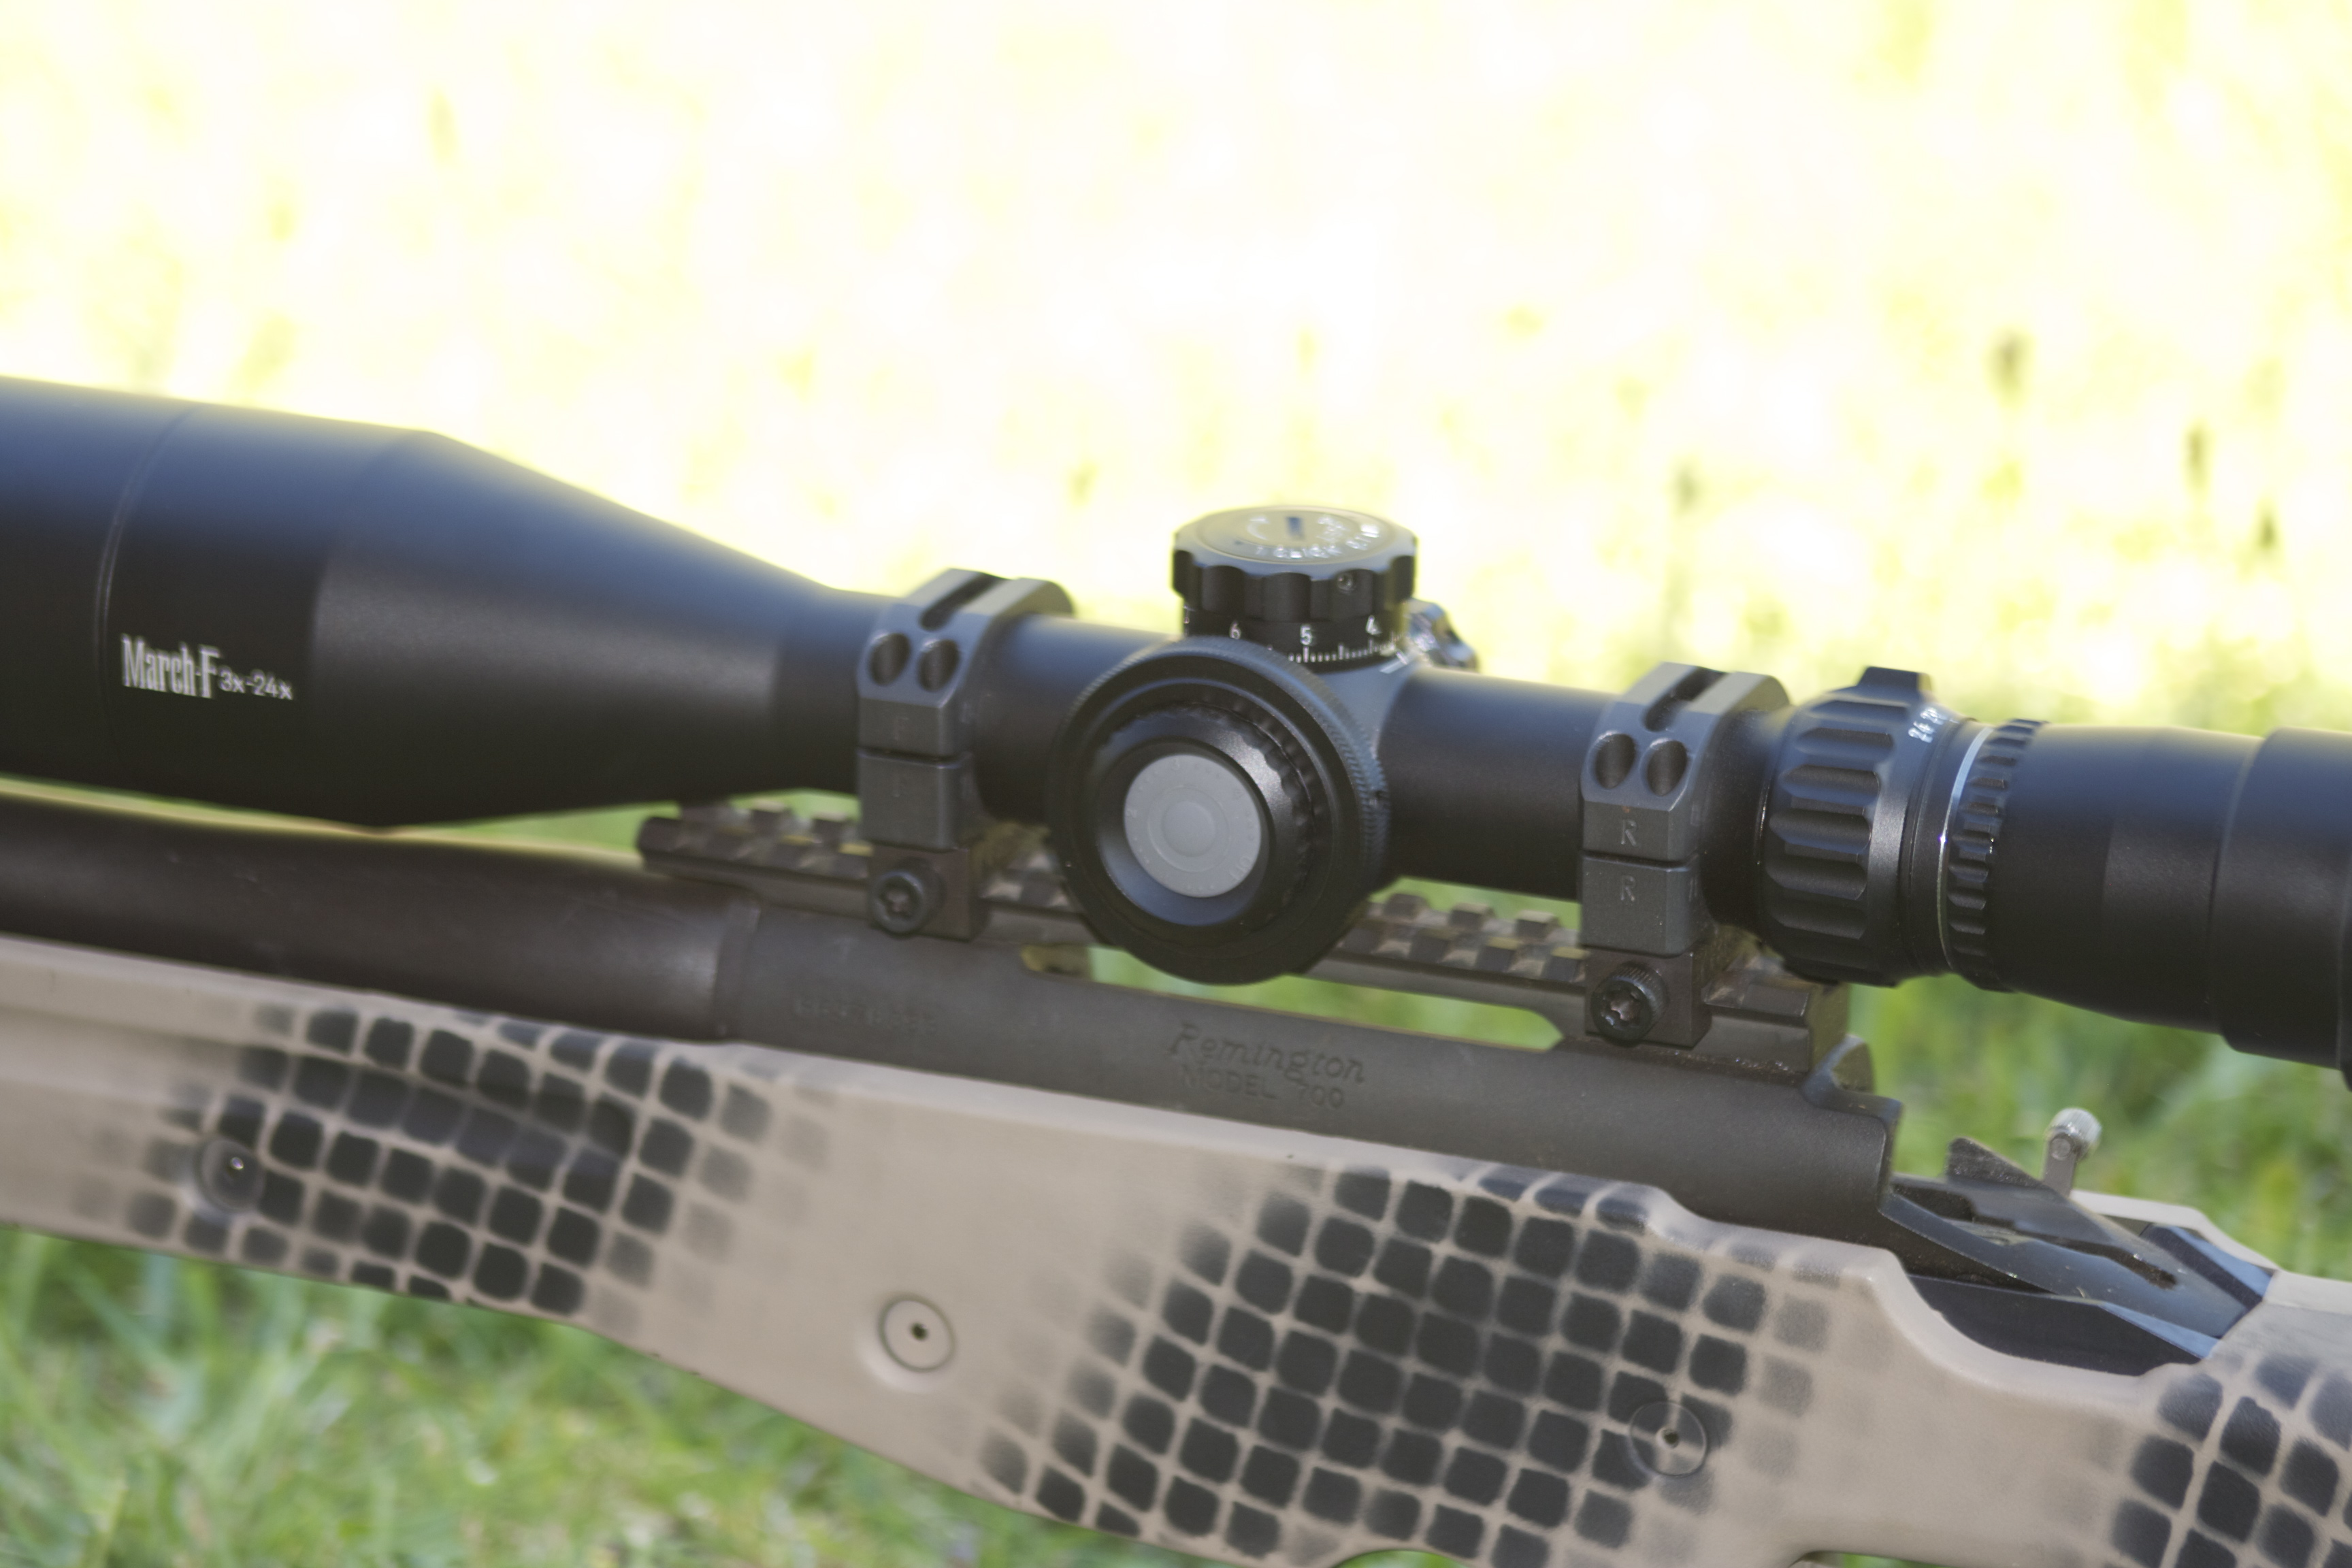 The March 3 – 24 x 52mm FFP sat a little too low on this rifle.  Changing the mounts to a slightly higher set made all the difference for the author.